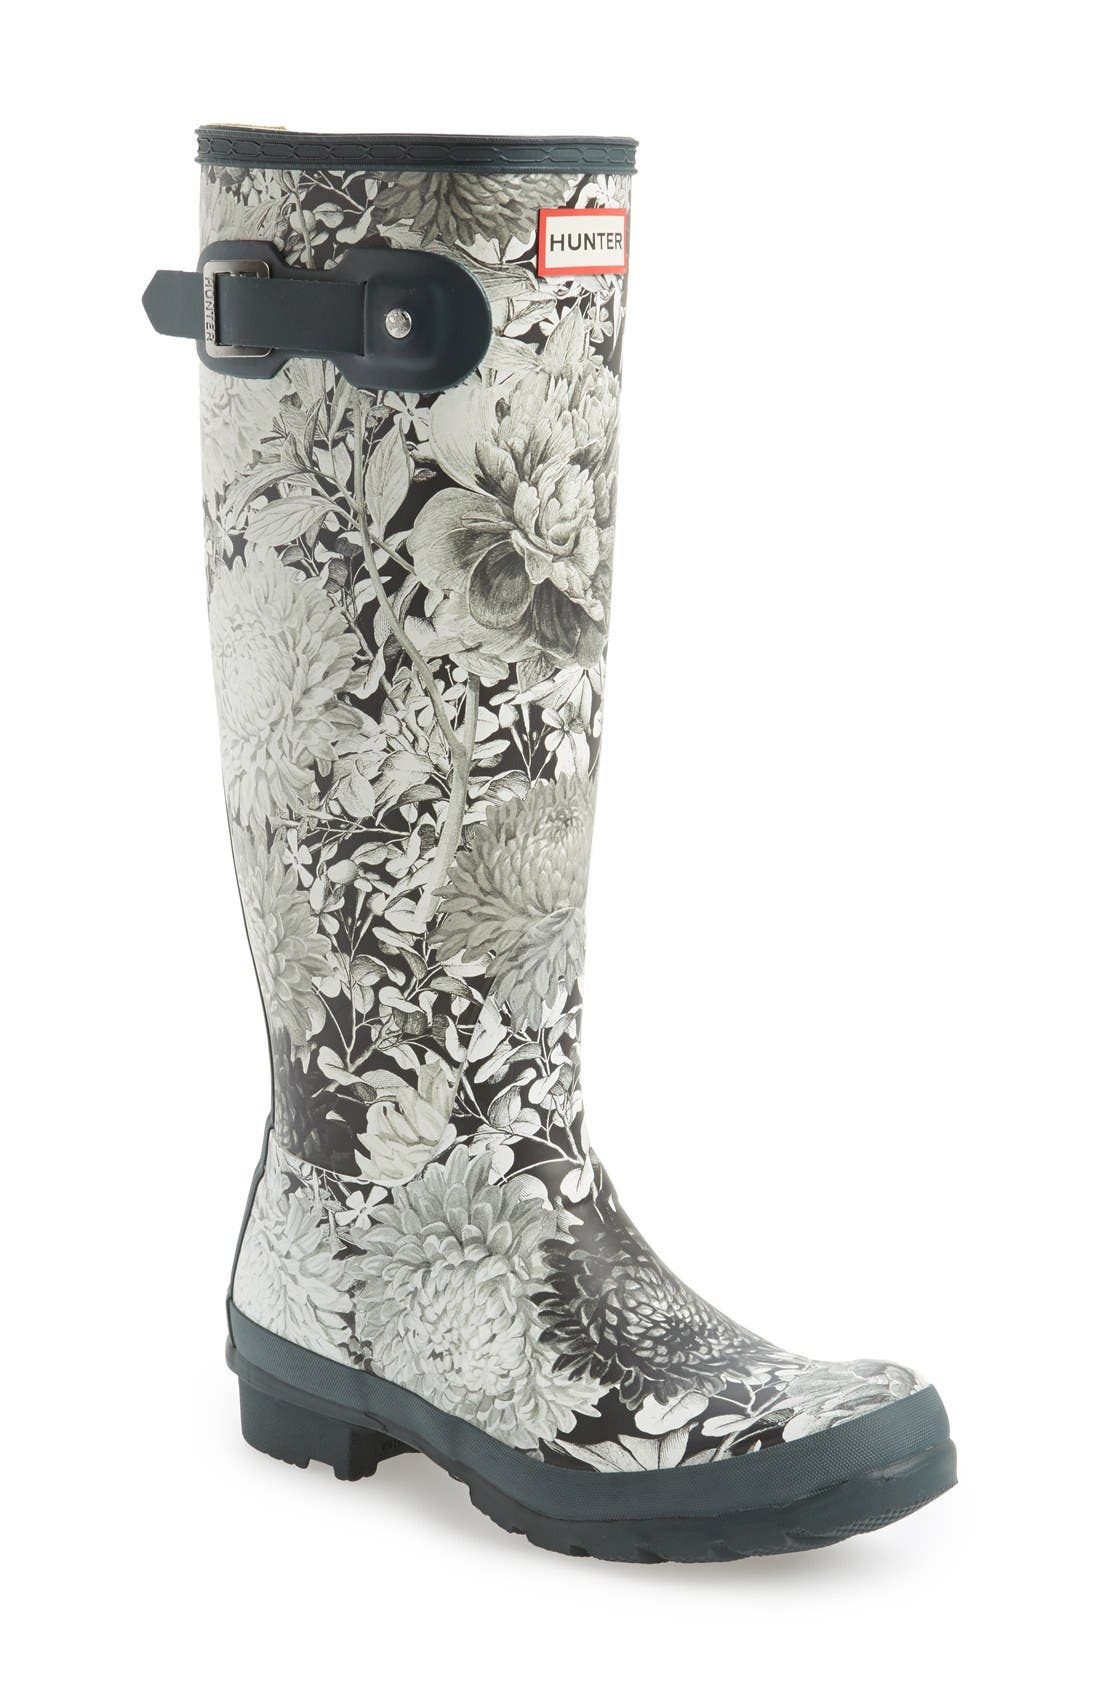 Alternate Image 1 Selected - Hunter 'Original Tall' Rain Boot (Women)